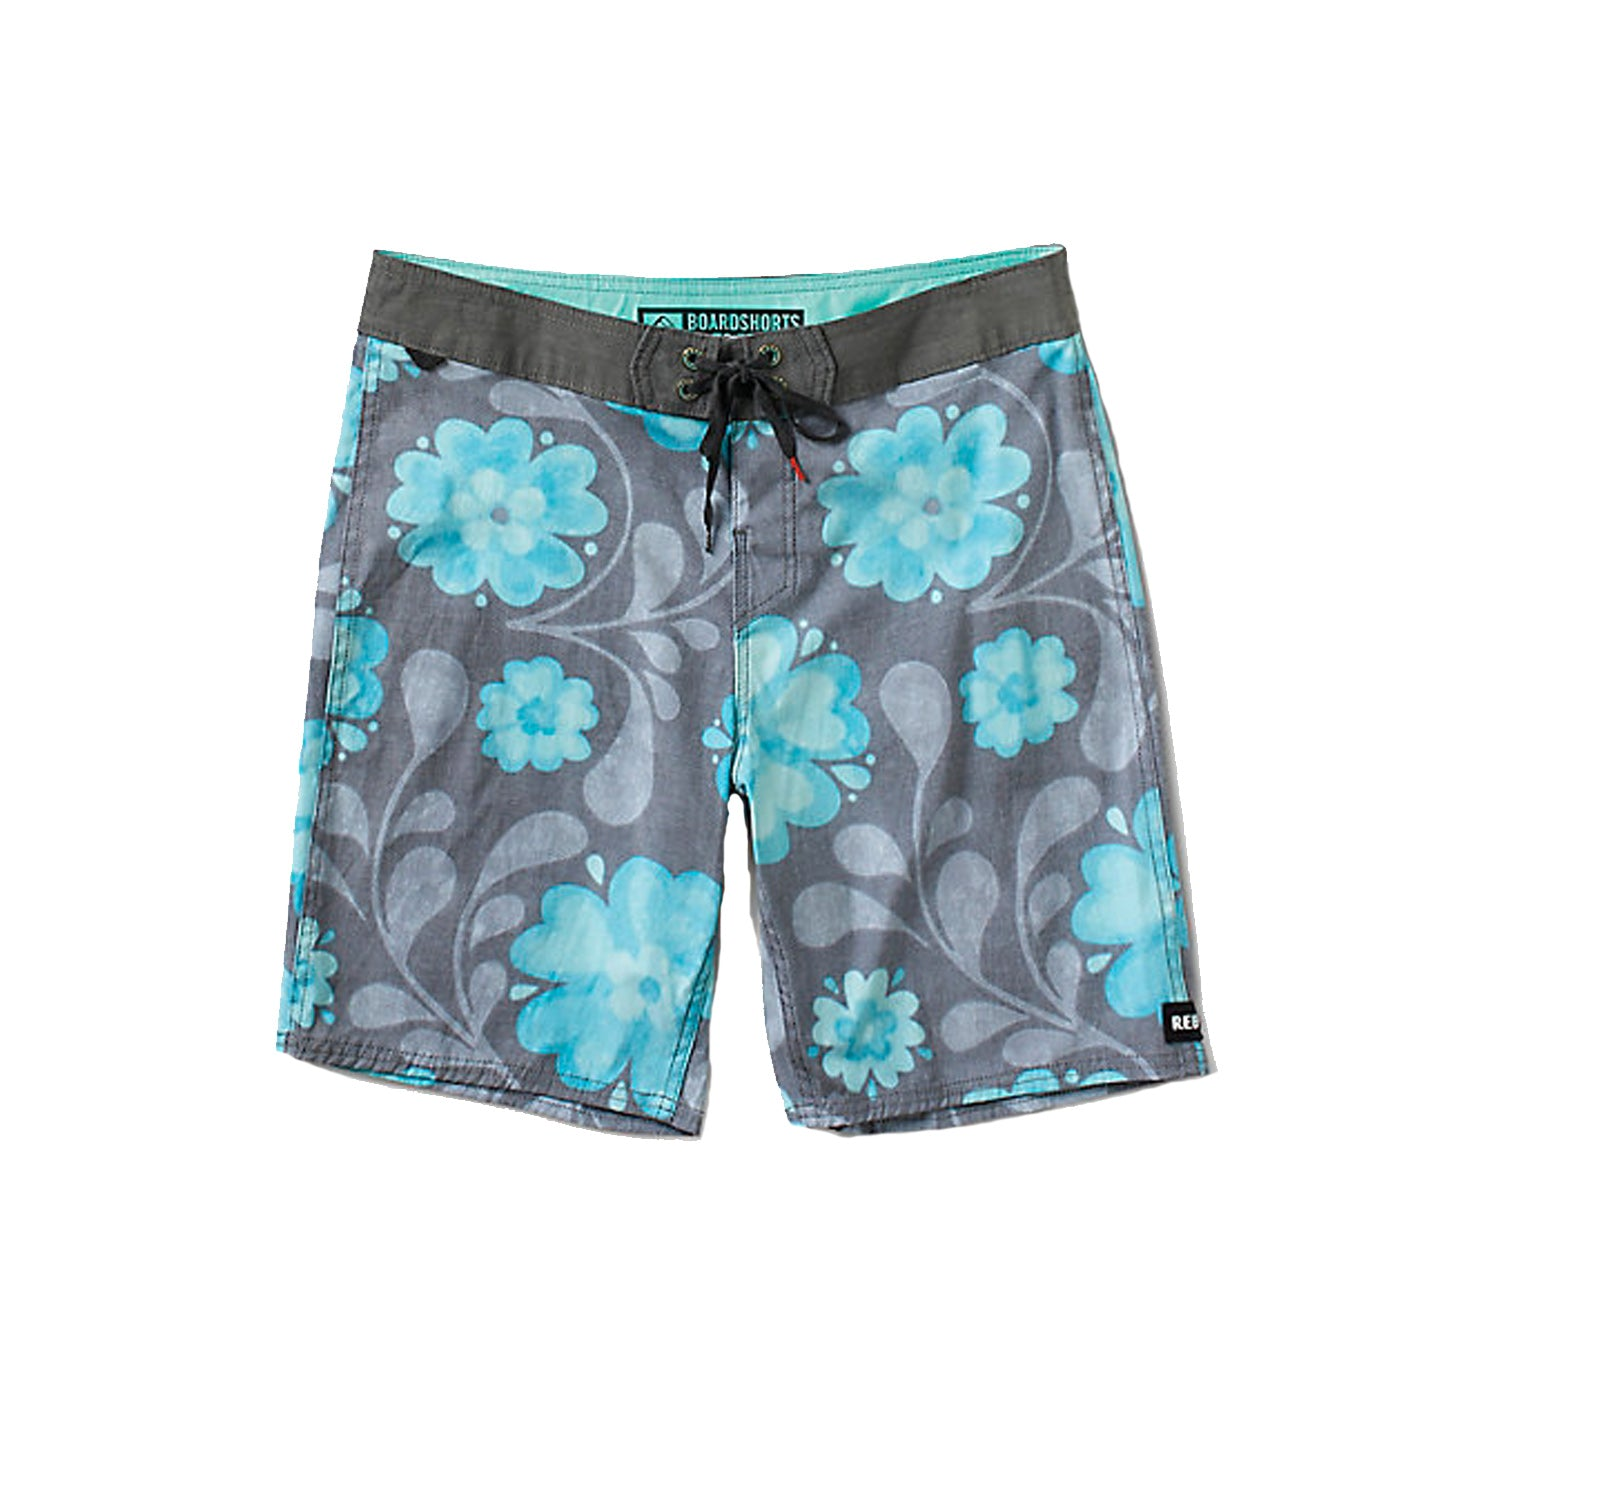 Reef Fields Men's Boardshorts